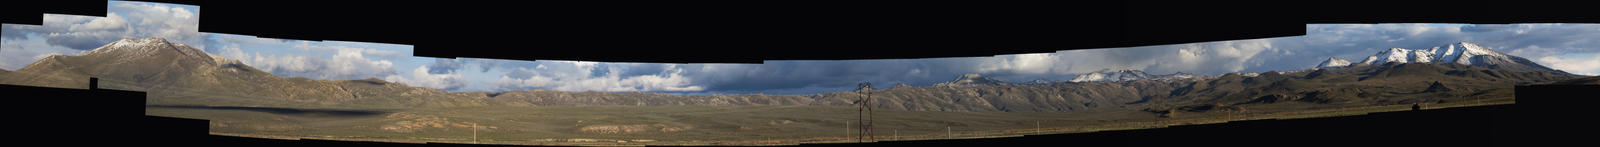 Panorama near Contact, NV by Kopachris